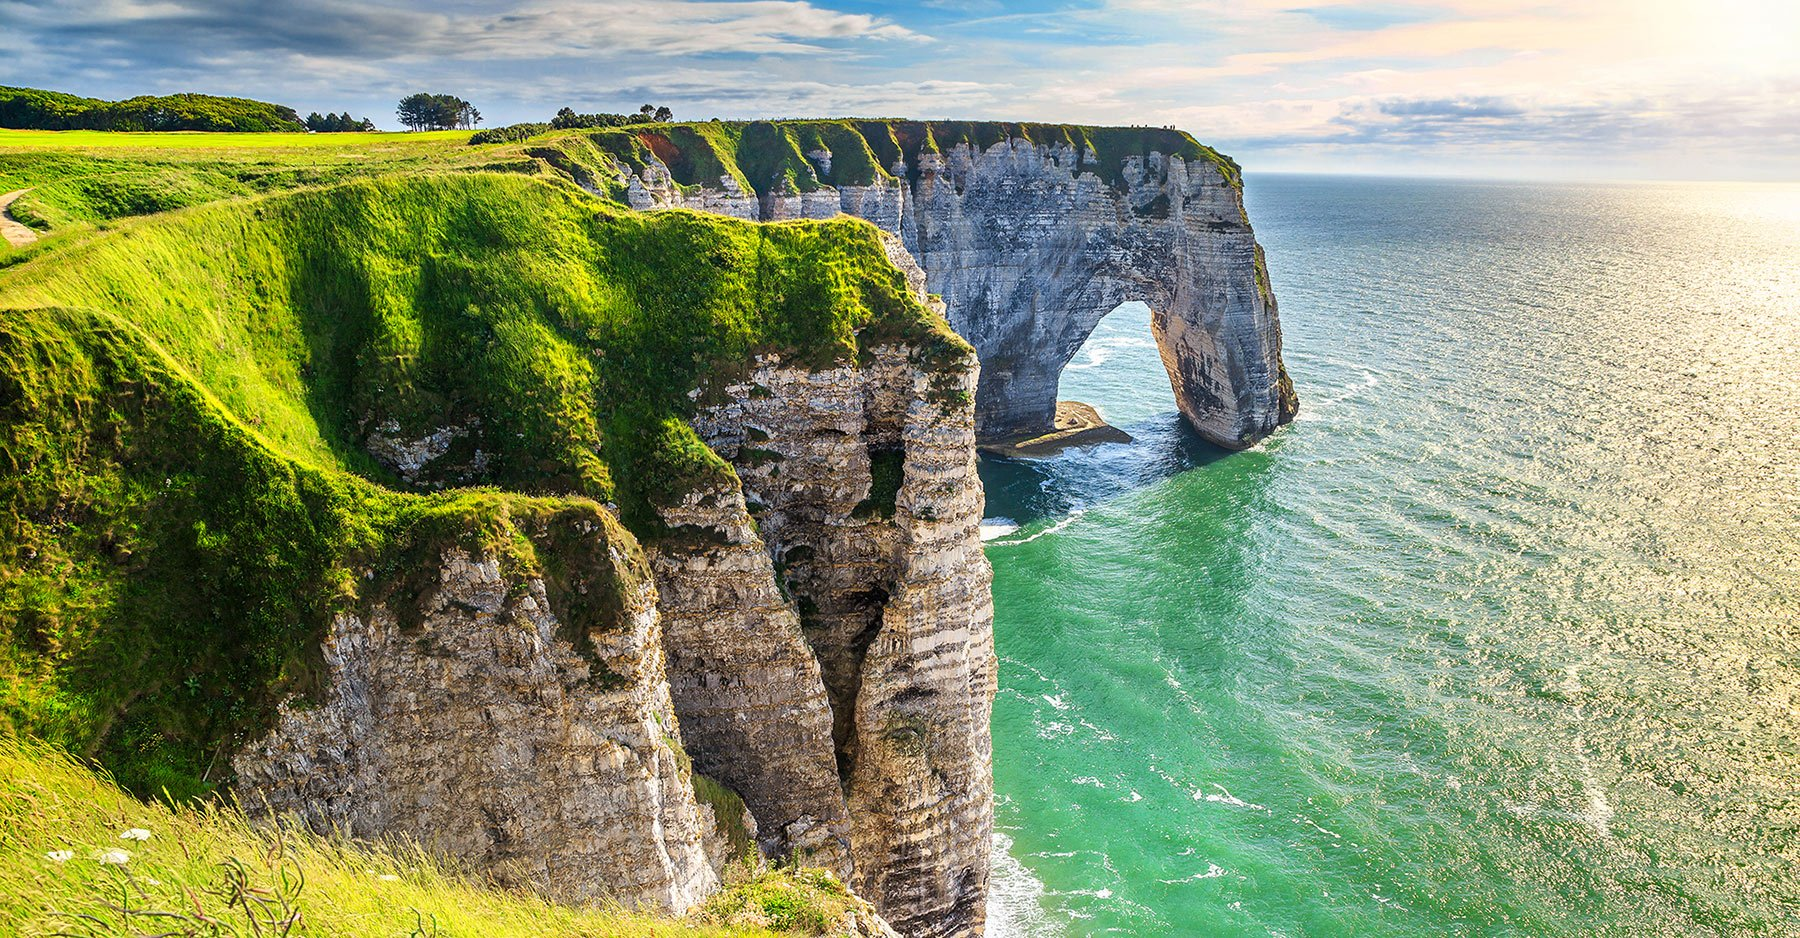 Tailored itineraries in Normandy - Peplum DMC France